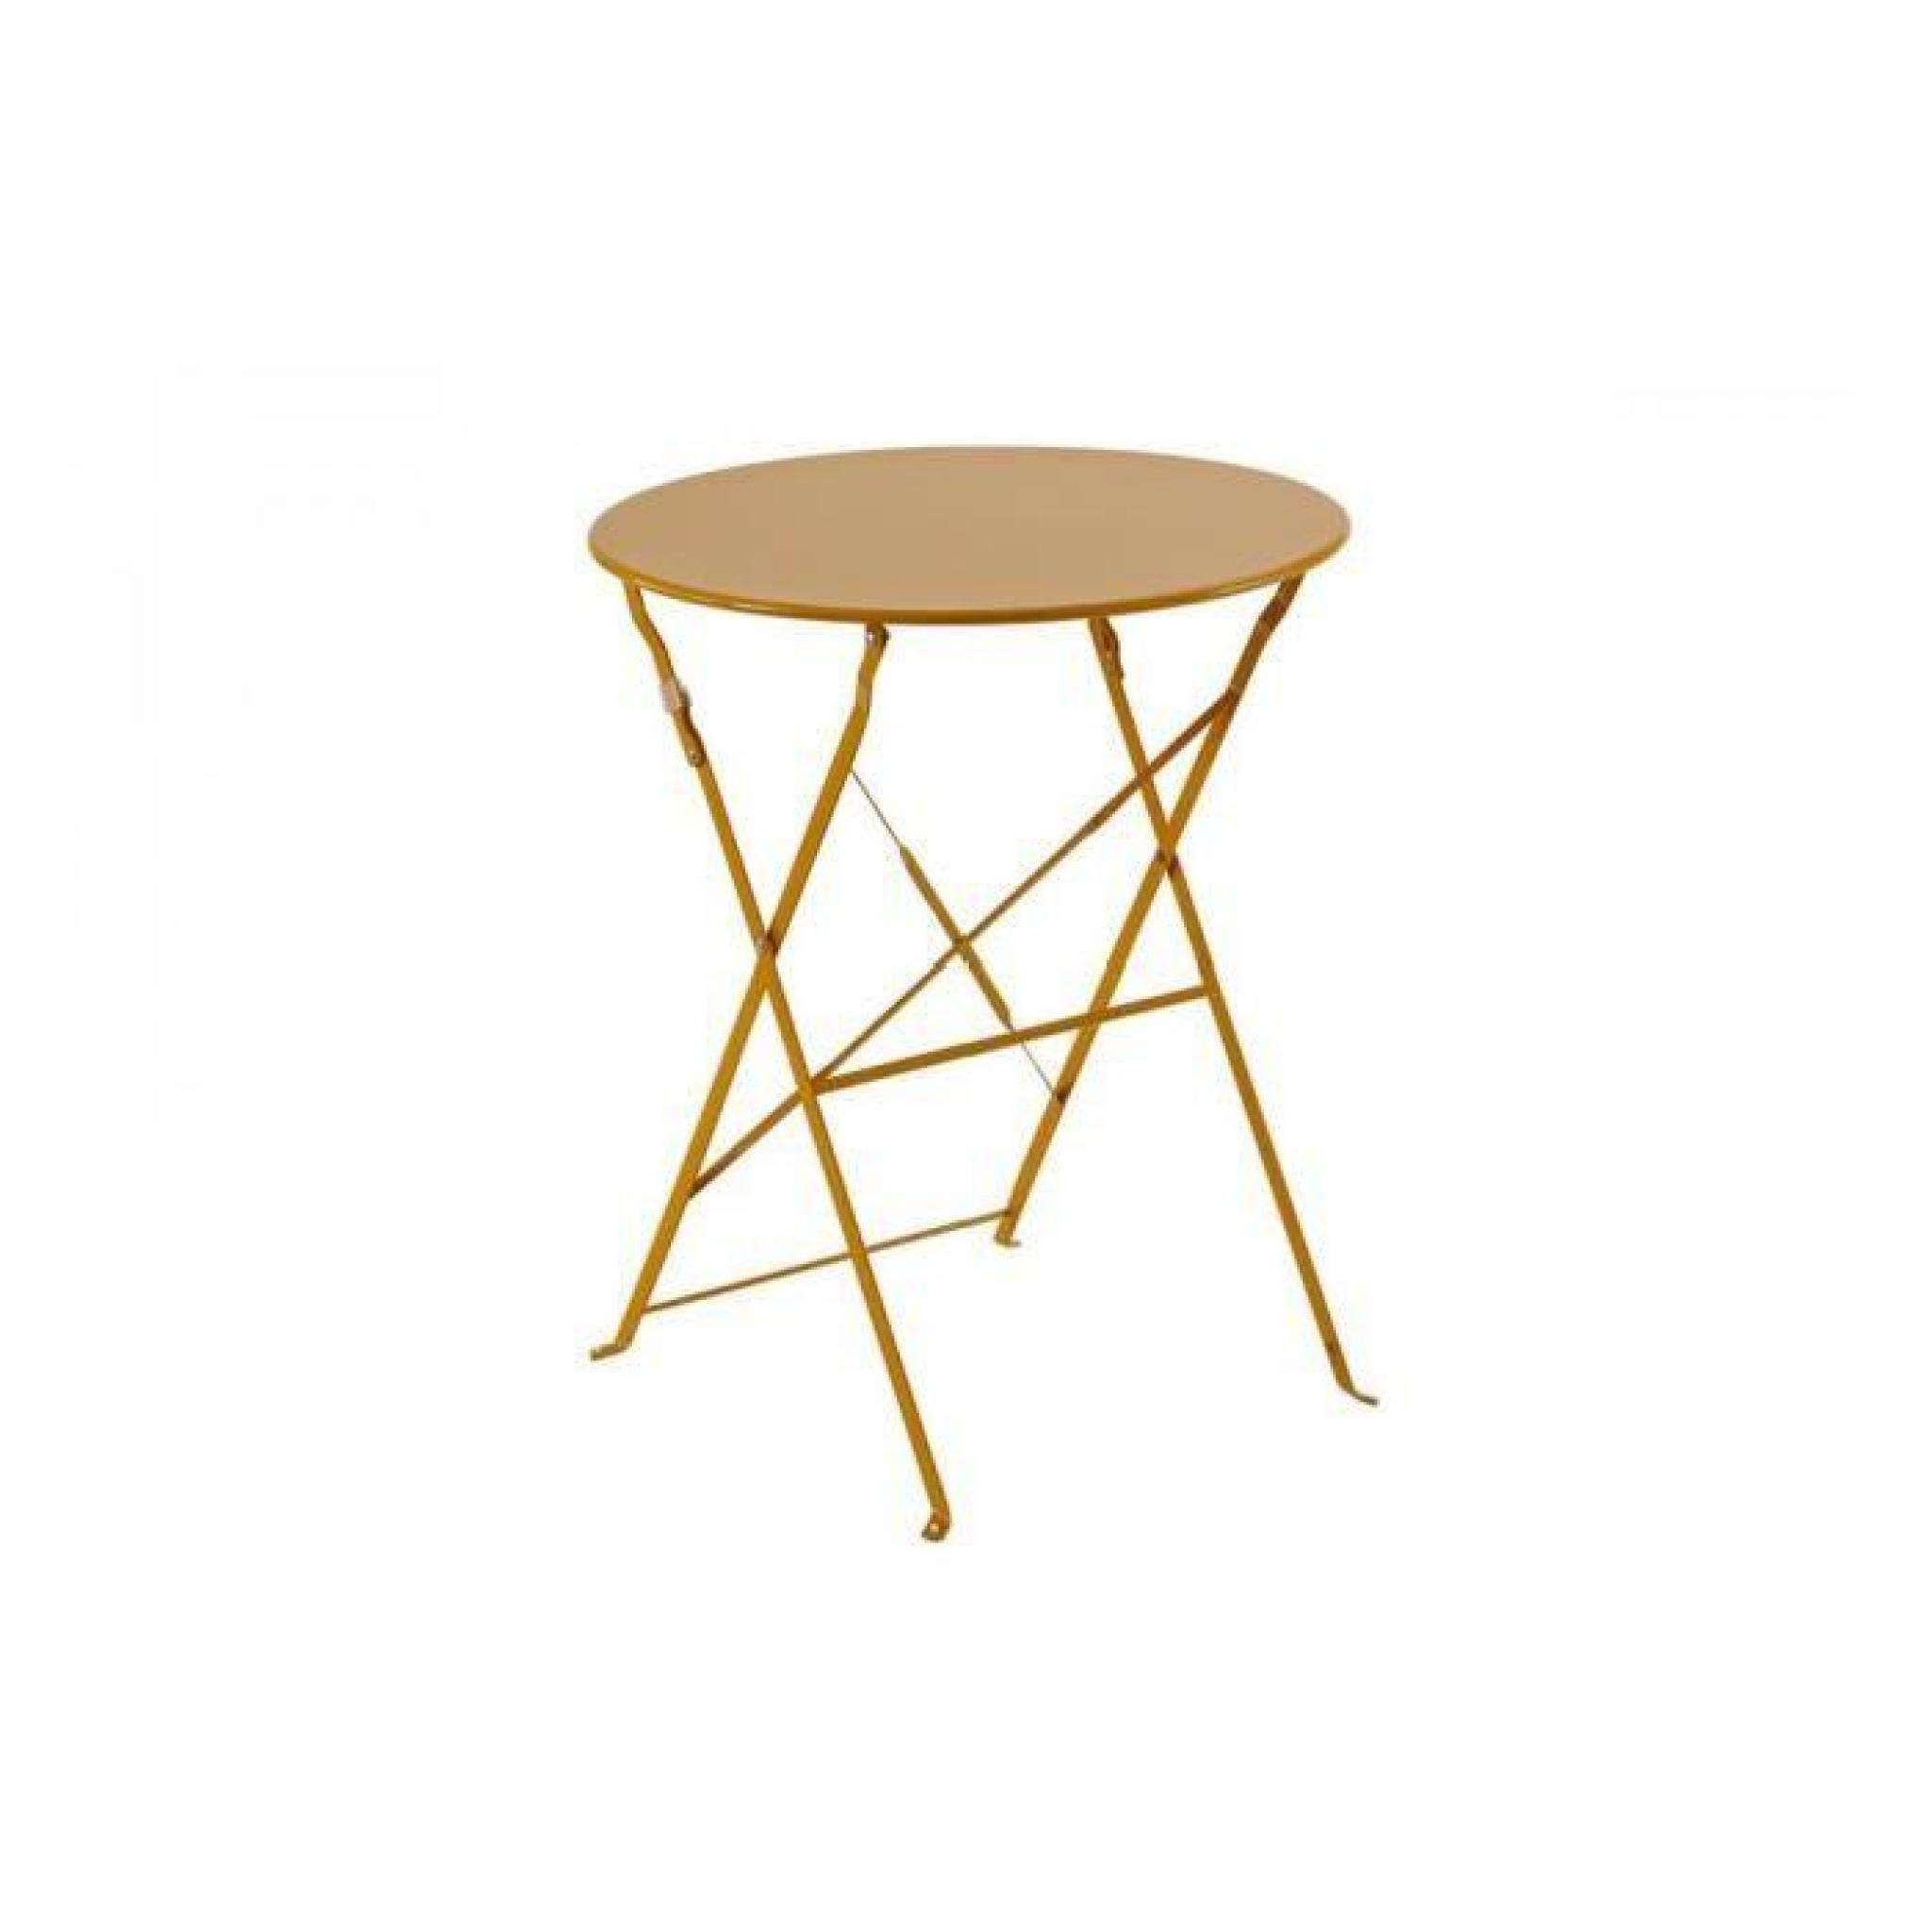 Table Ronde De Jardin Pas Cher Table Ronde 60cm Pliante Camargue Hesperide Orange Achat